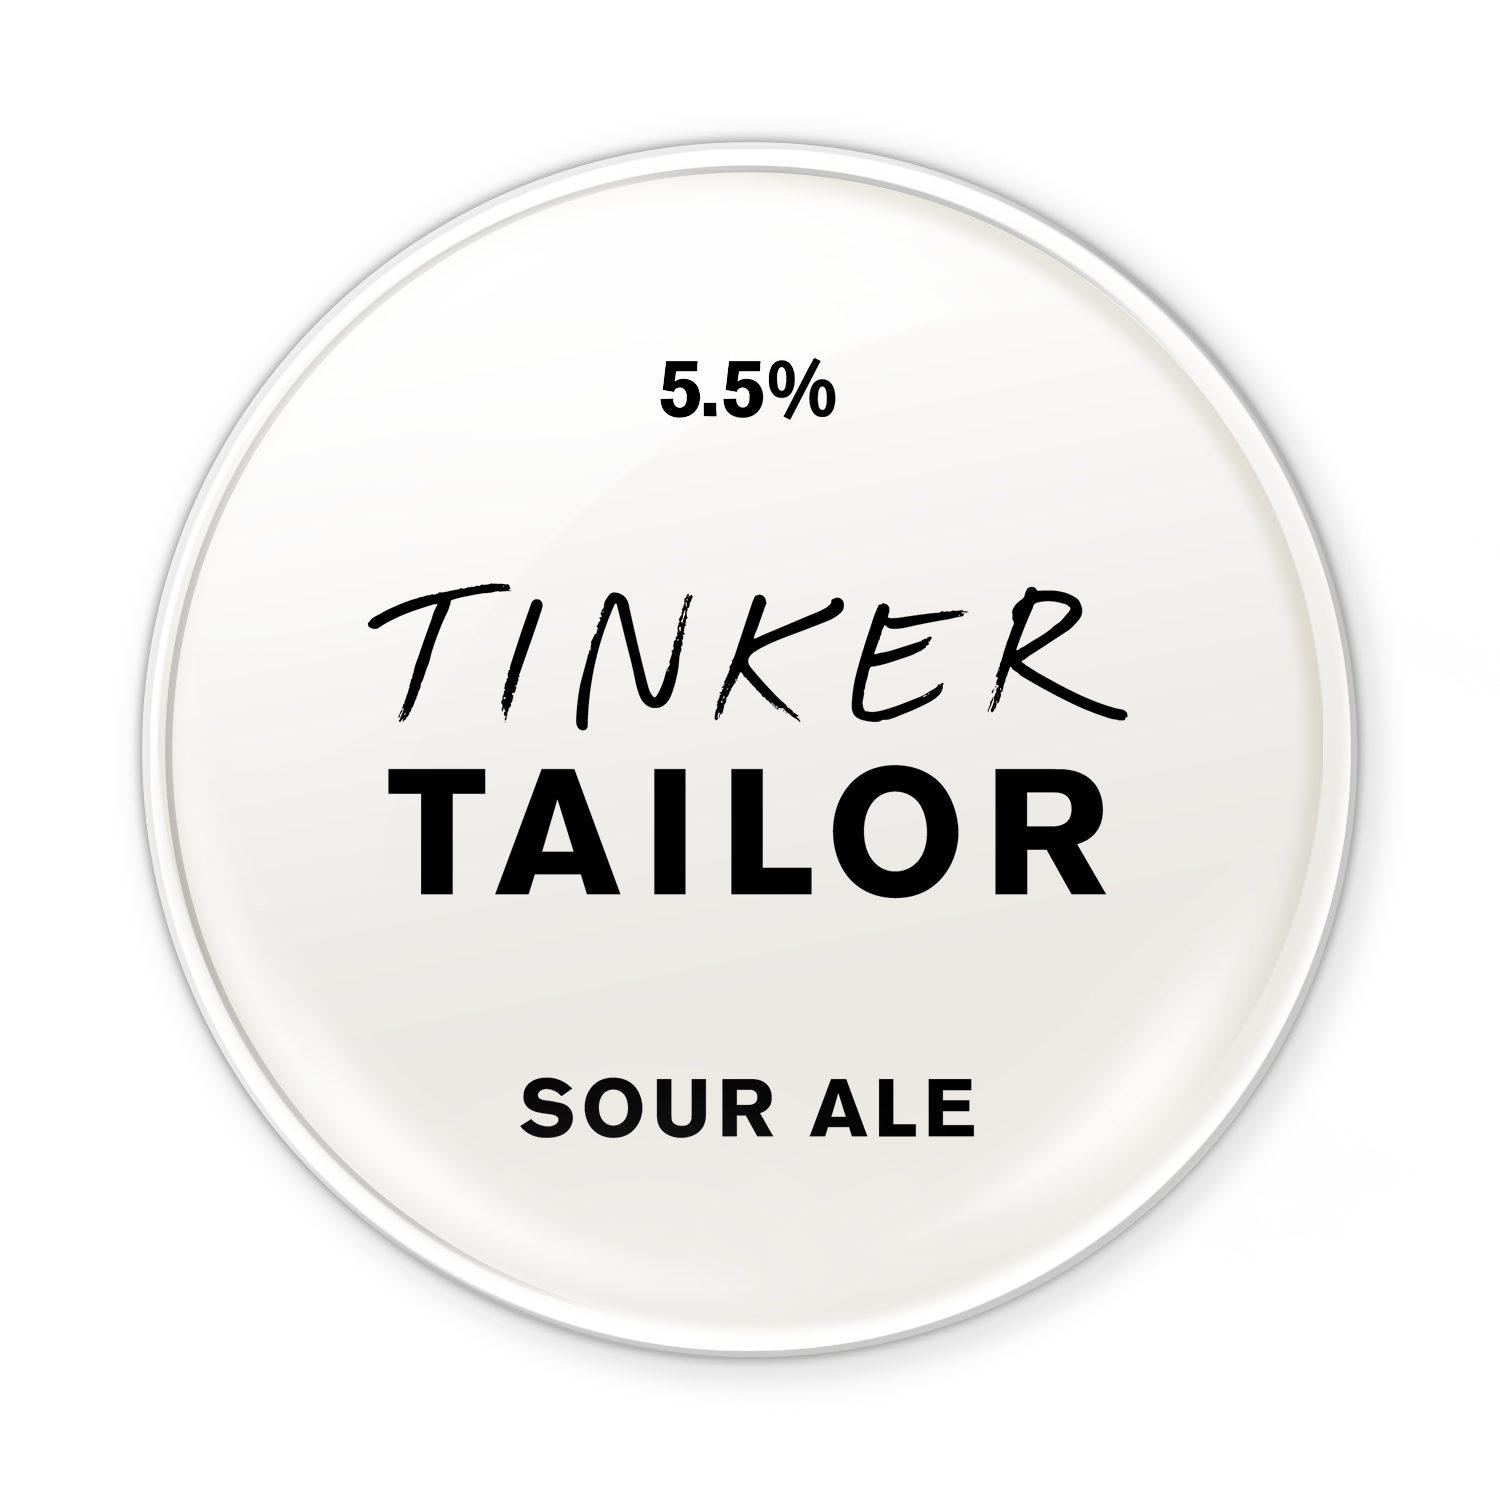 Sour Ale - Our Sour Ale is tailored true-to-style. Sweet and tart in all the right kind of ways, hints of strawberry balance a delicate tang on the tongue. Funky, fruity and fresh.A perfect accompaniment to fried chicken smothered in a sweet spicy sauce.5.5%